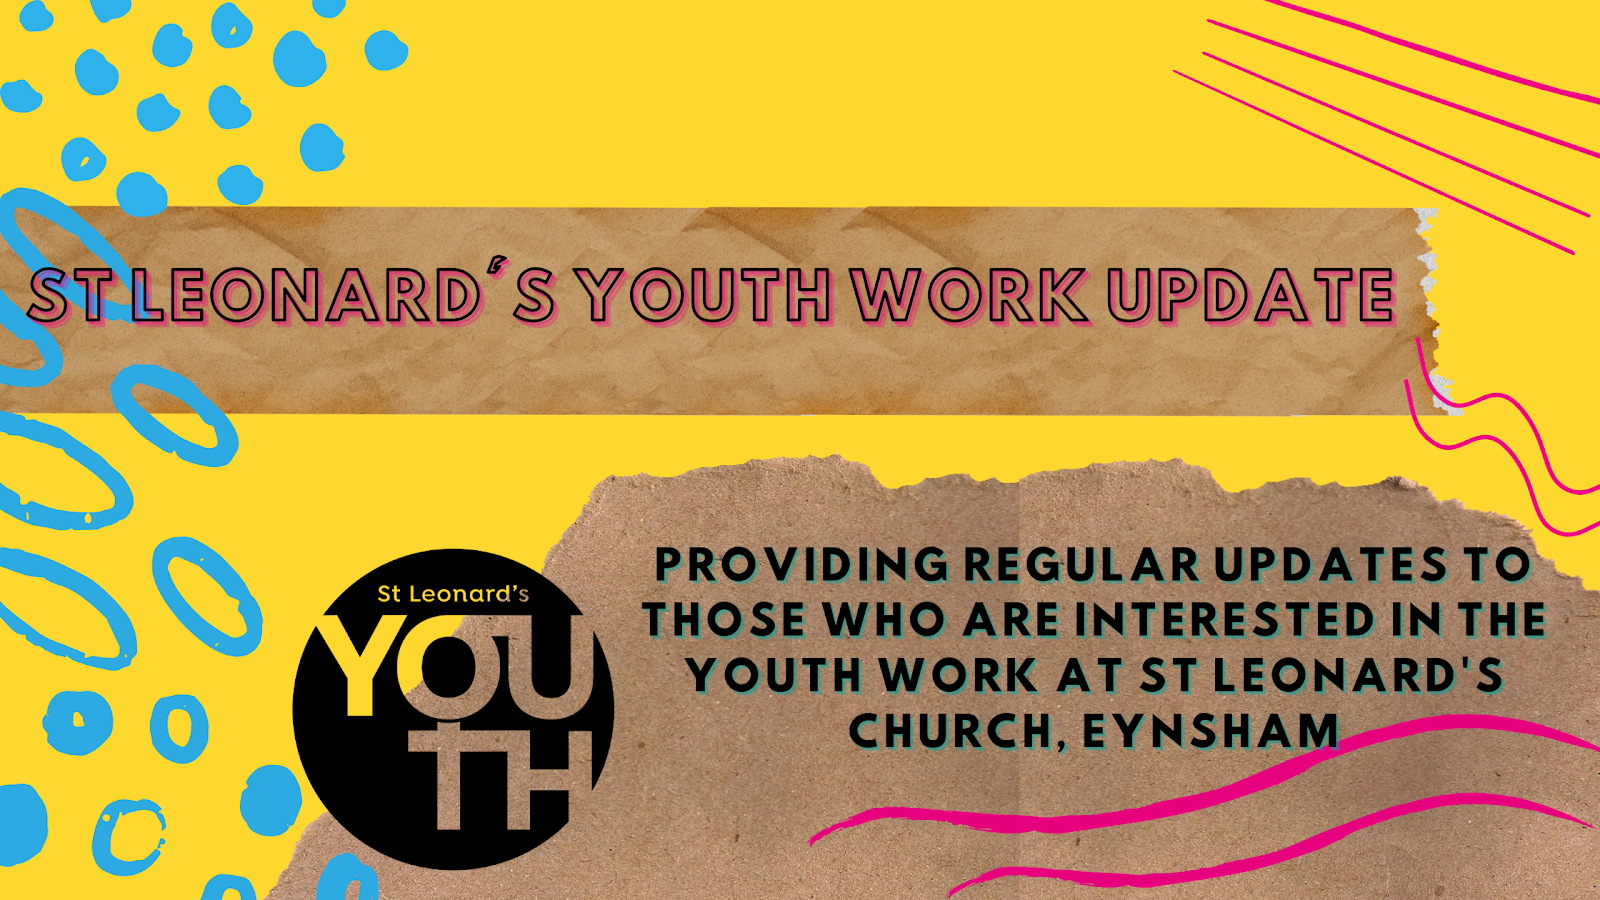 St. Leonard's Youth Work Update